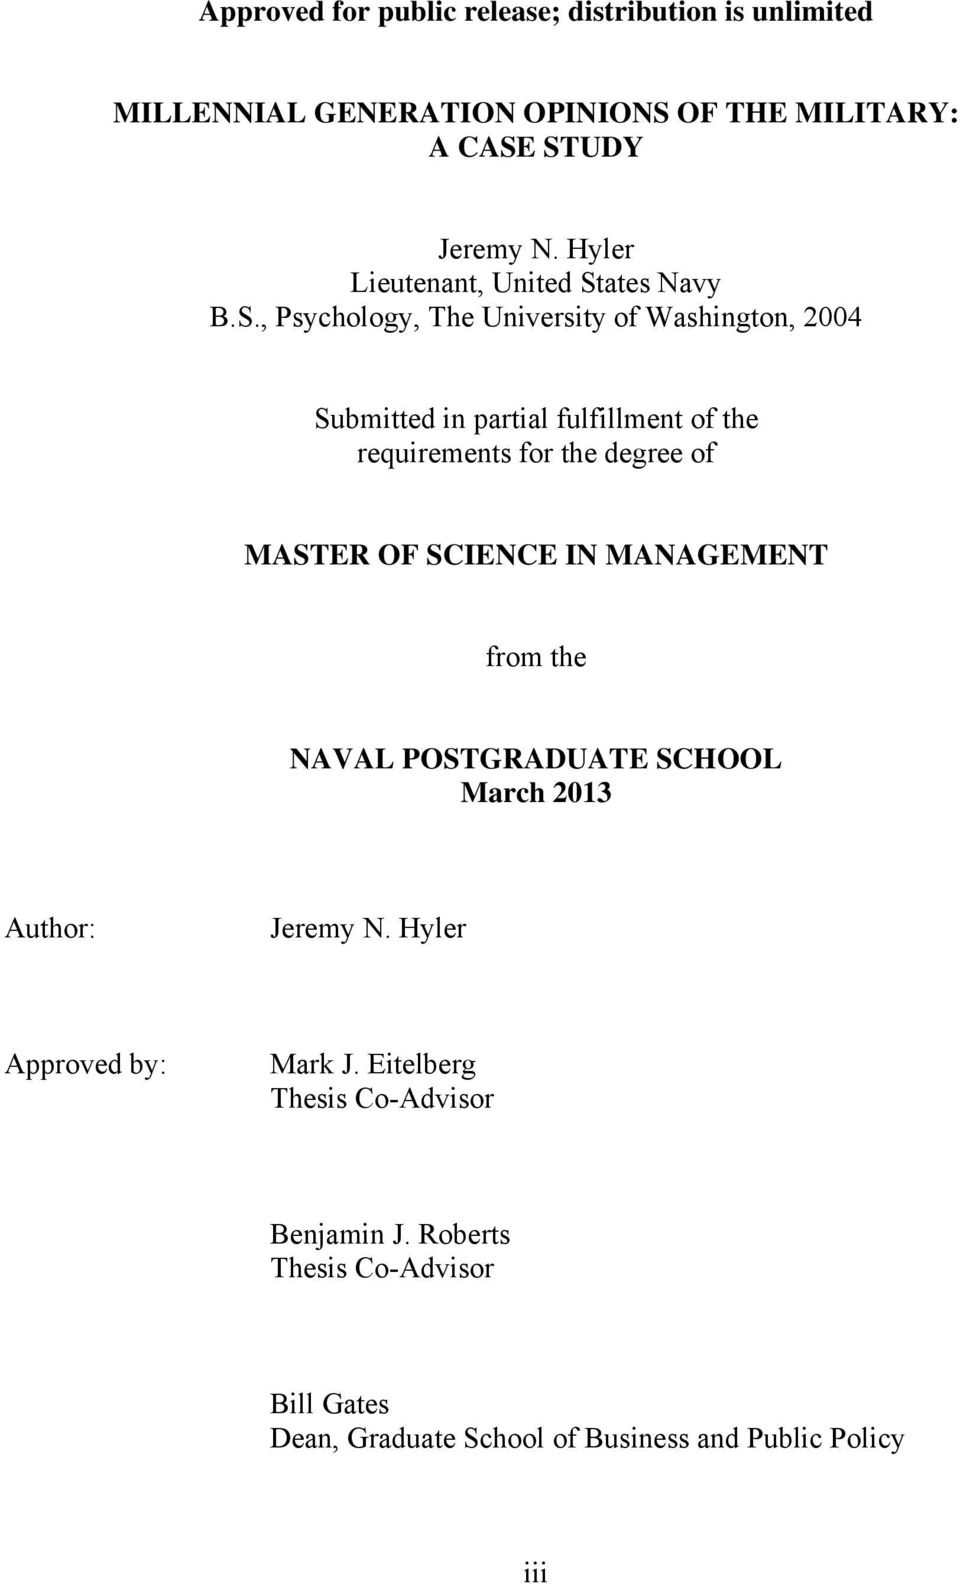 naval postgraduate school thesis 2011